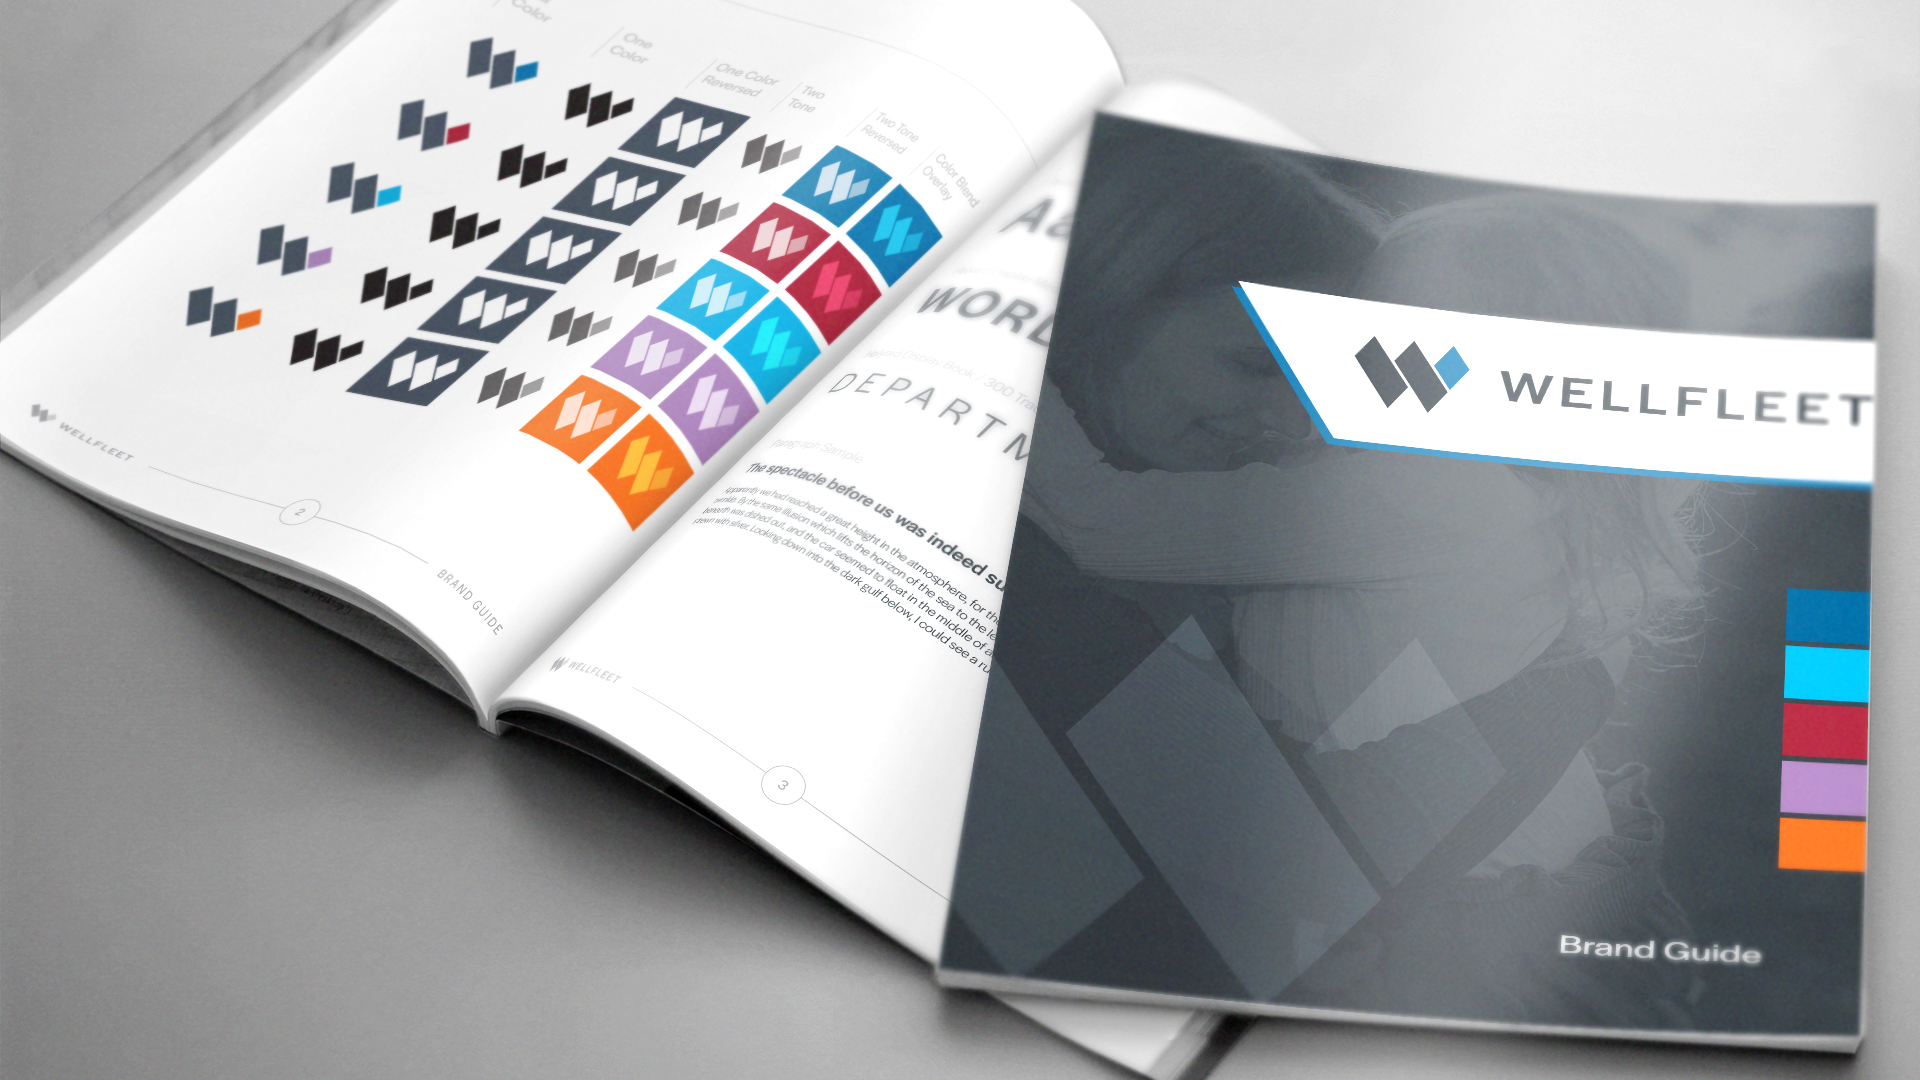 DIF Design Project - Wellfleet Logo and Identity Style Guide